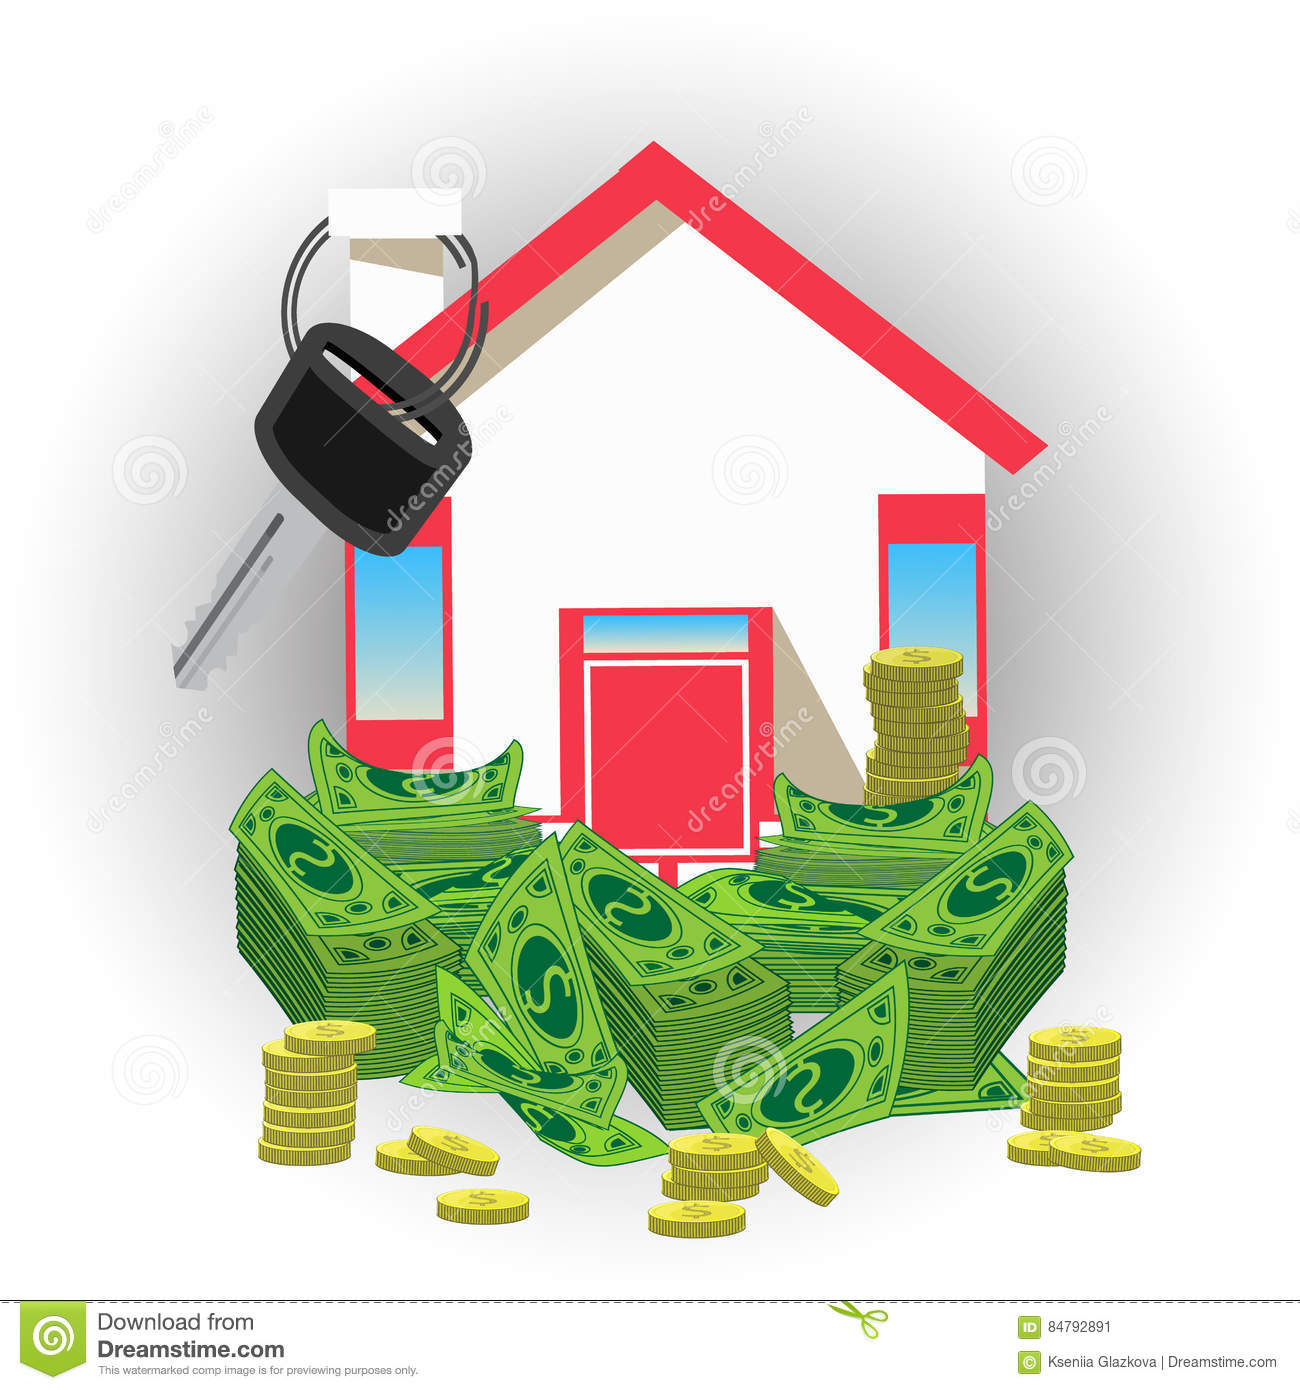 House Key With Money. An Icon A Red Roof Stock Illustration ... on caribbean house designs, button designs, lantern designs, bunkie designs, keys with designs, poetry designs, house extension designs, house keys fun, diary designs, money designs, stilt home designs, phone designs, florida beach house designs, house entry designs, house warehouse, cool computer designs, house number designs, housekeeping designs, house of k fashion logo, black and white abstract designs,